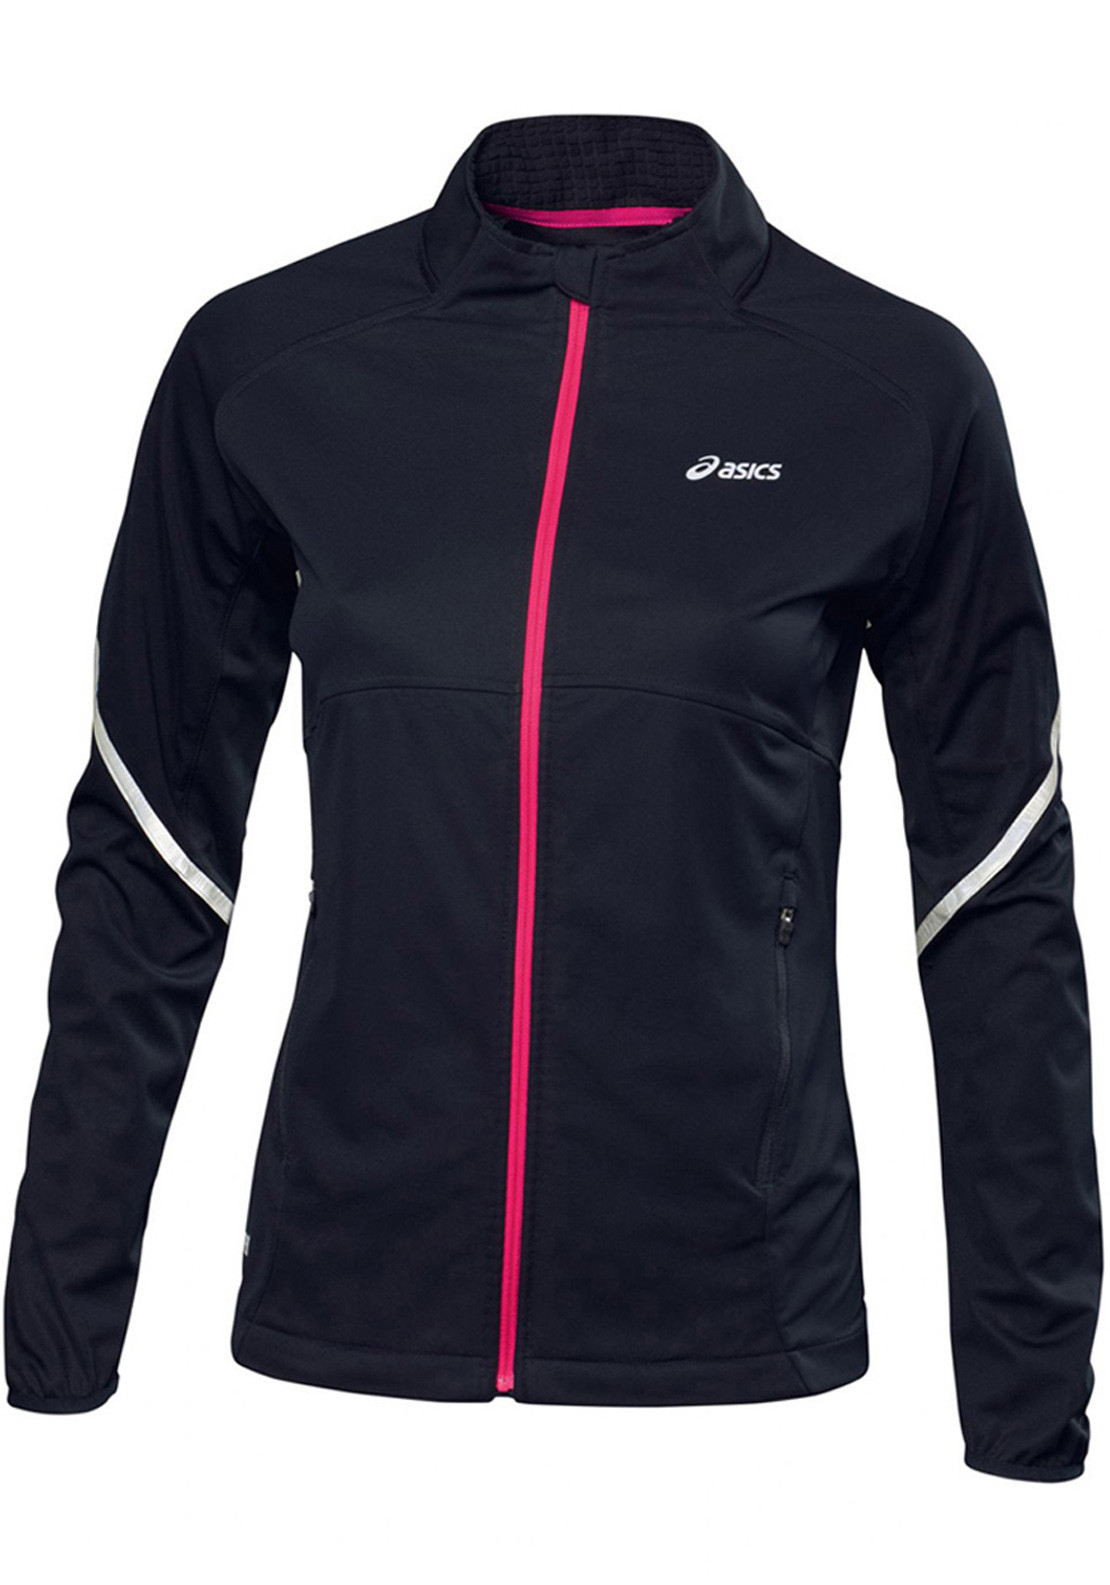 Asics Women's Gore Windstopper Jacket, Performance Black/Pink Glow